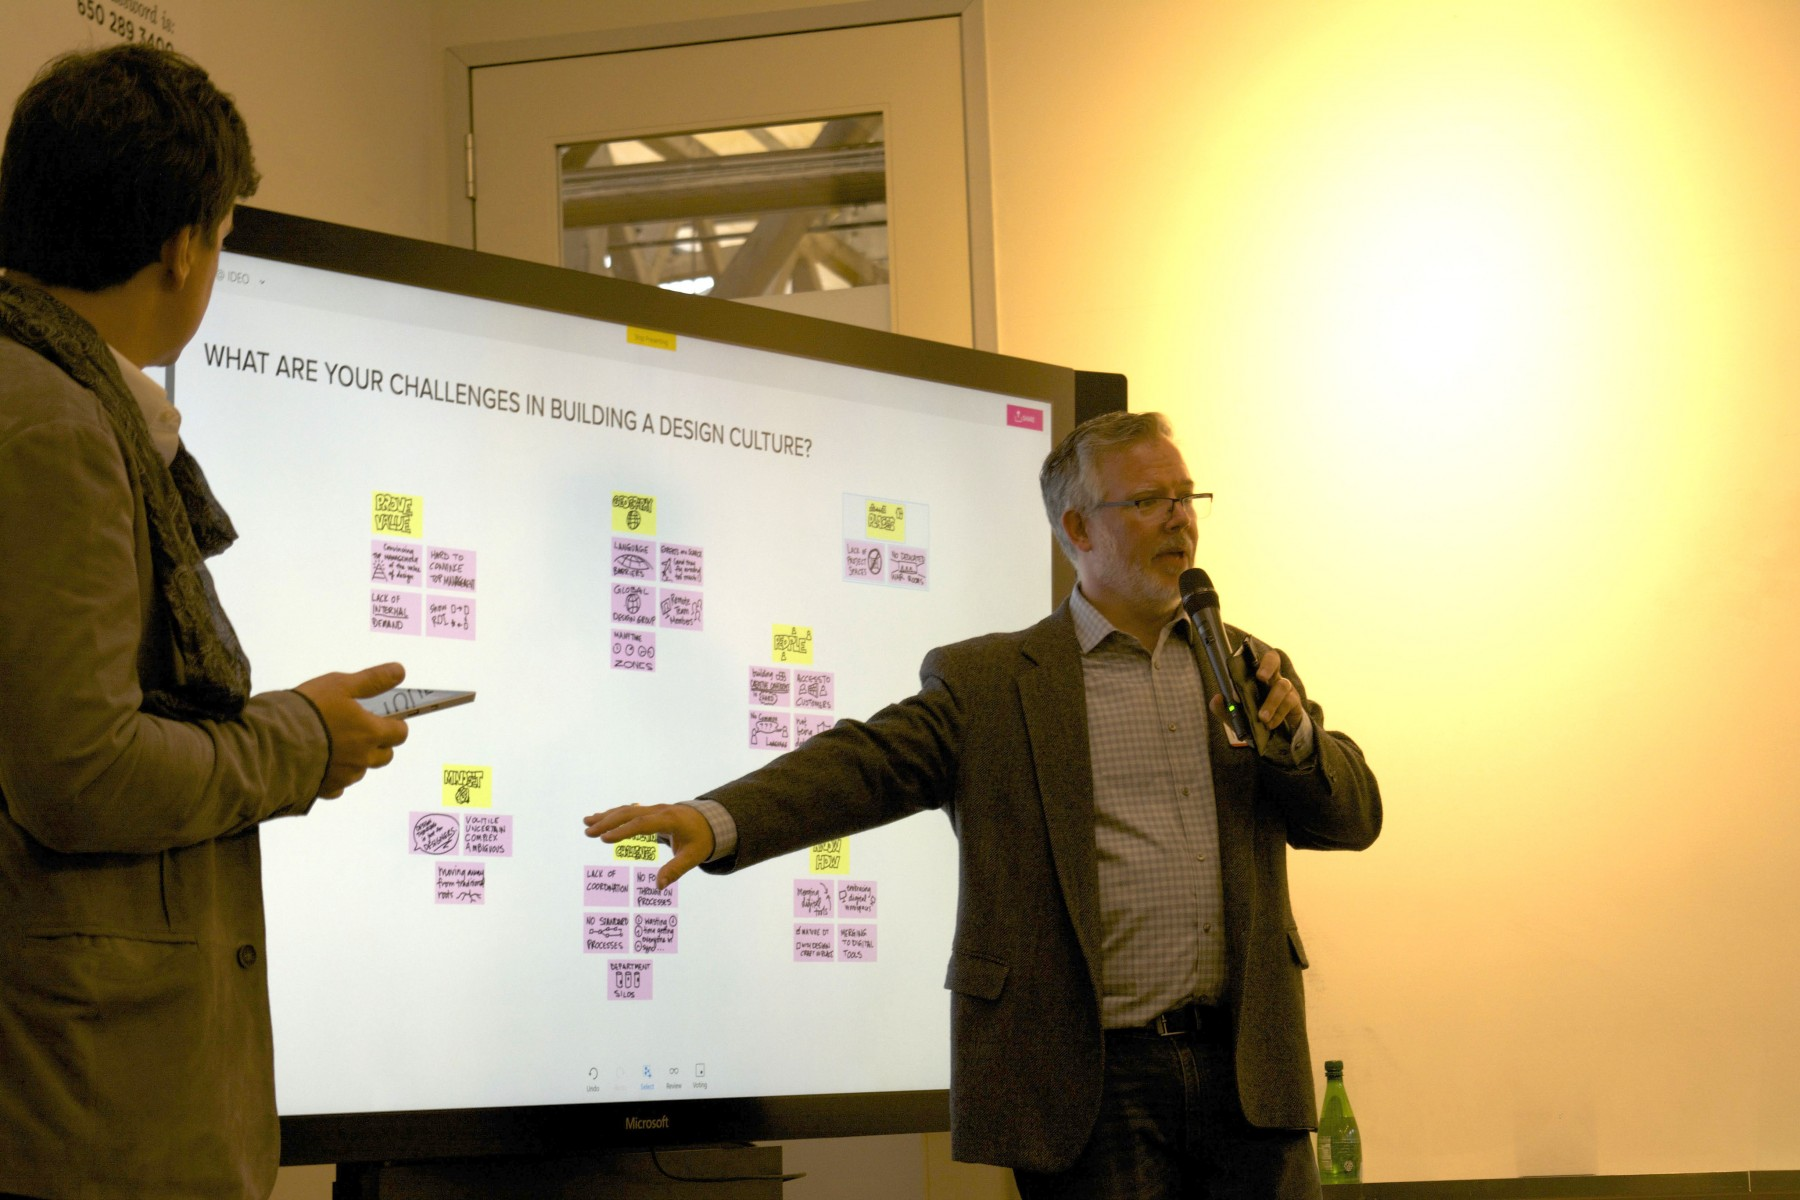 A Microsoft Surface Hub serves as a great space to gather ideas about remote collaboration and design thinking.